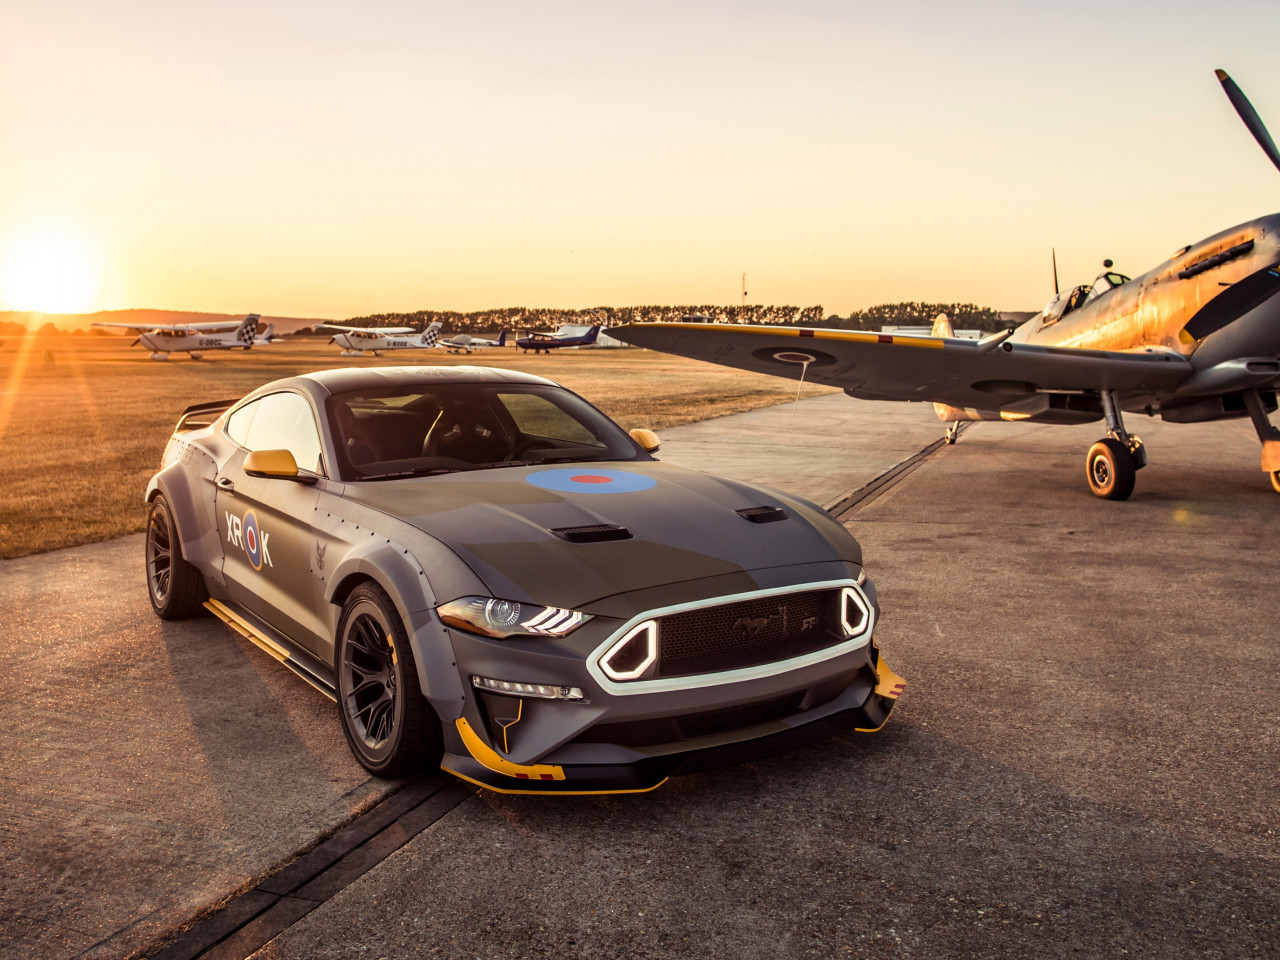 Ford Eagle Squadron Mustang GT | 1280x960 wallpaper